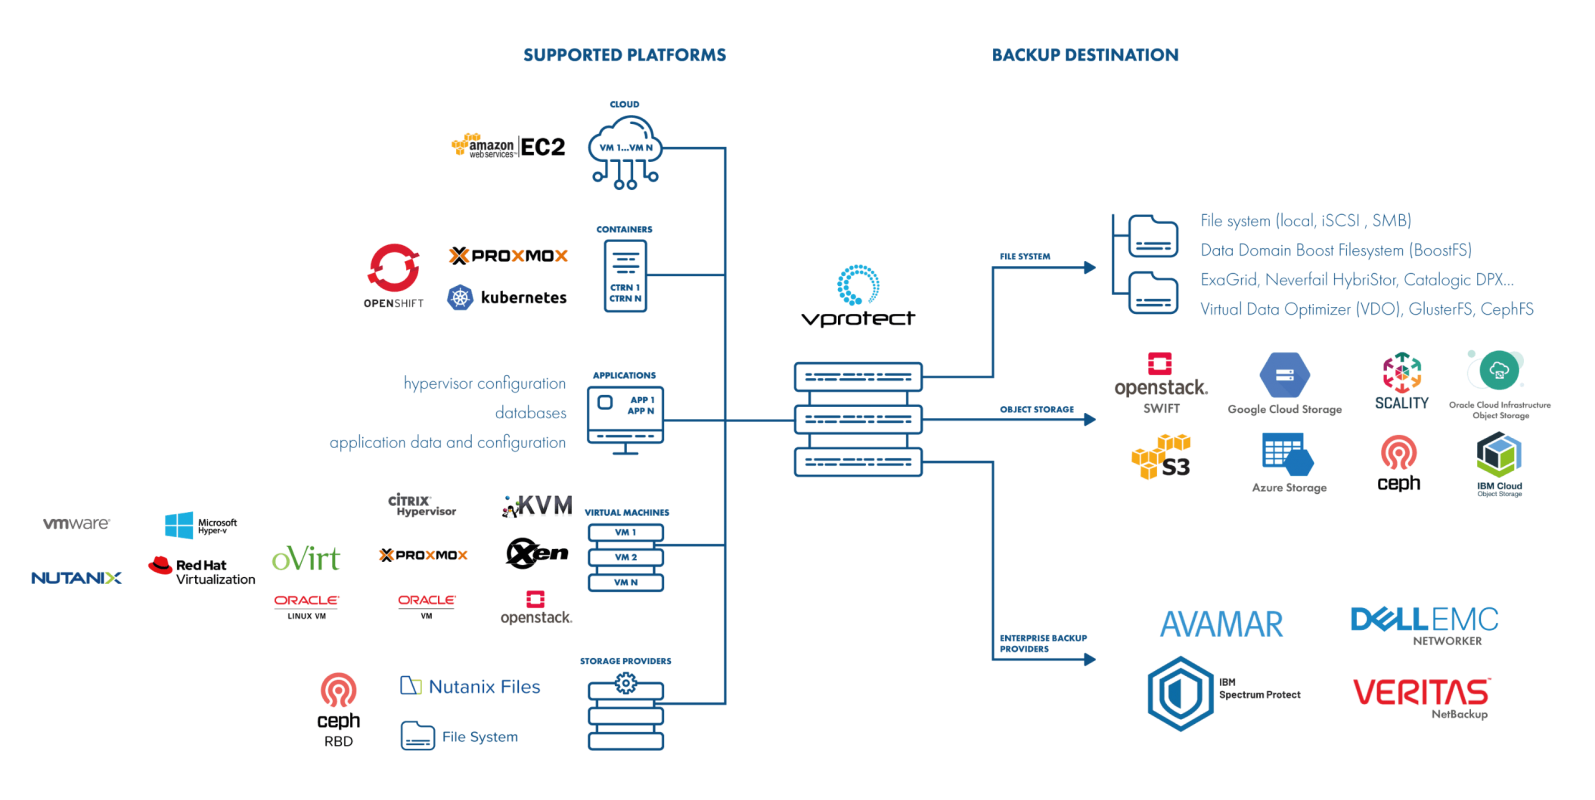 vProtect Architecture